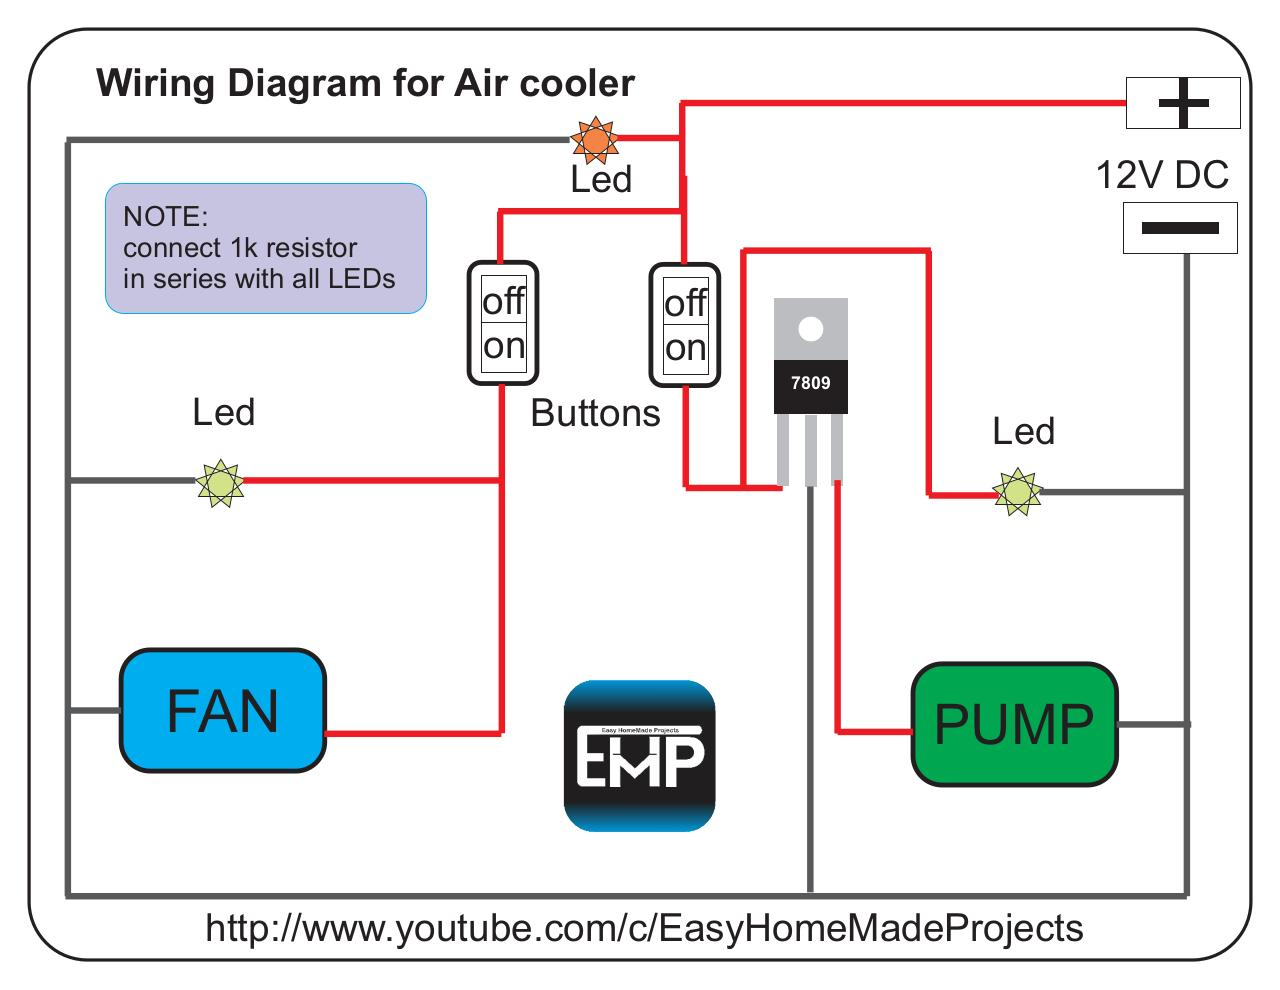 preview wiring diagram for mini air cooler 1 air cooler wiring diagram door wiring diagram \u2022 free wiring cooling components fan wiring diagram at suagrazia.org